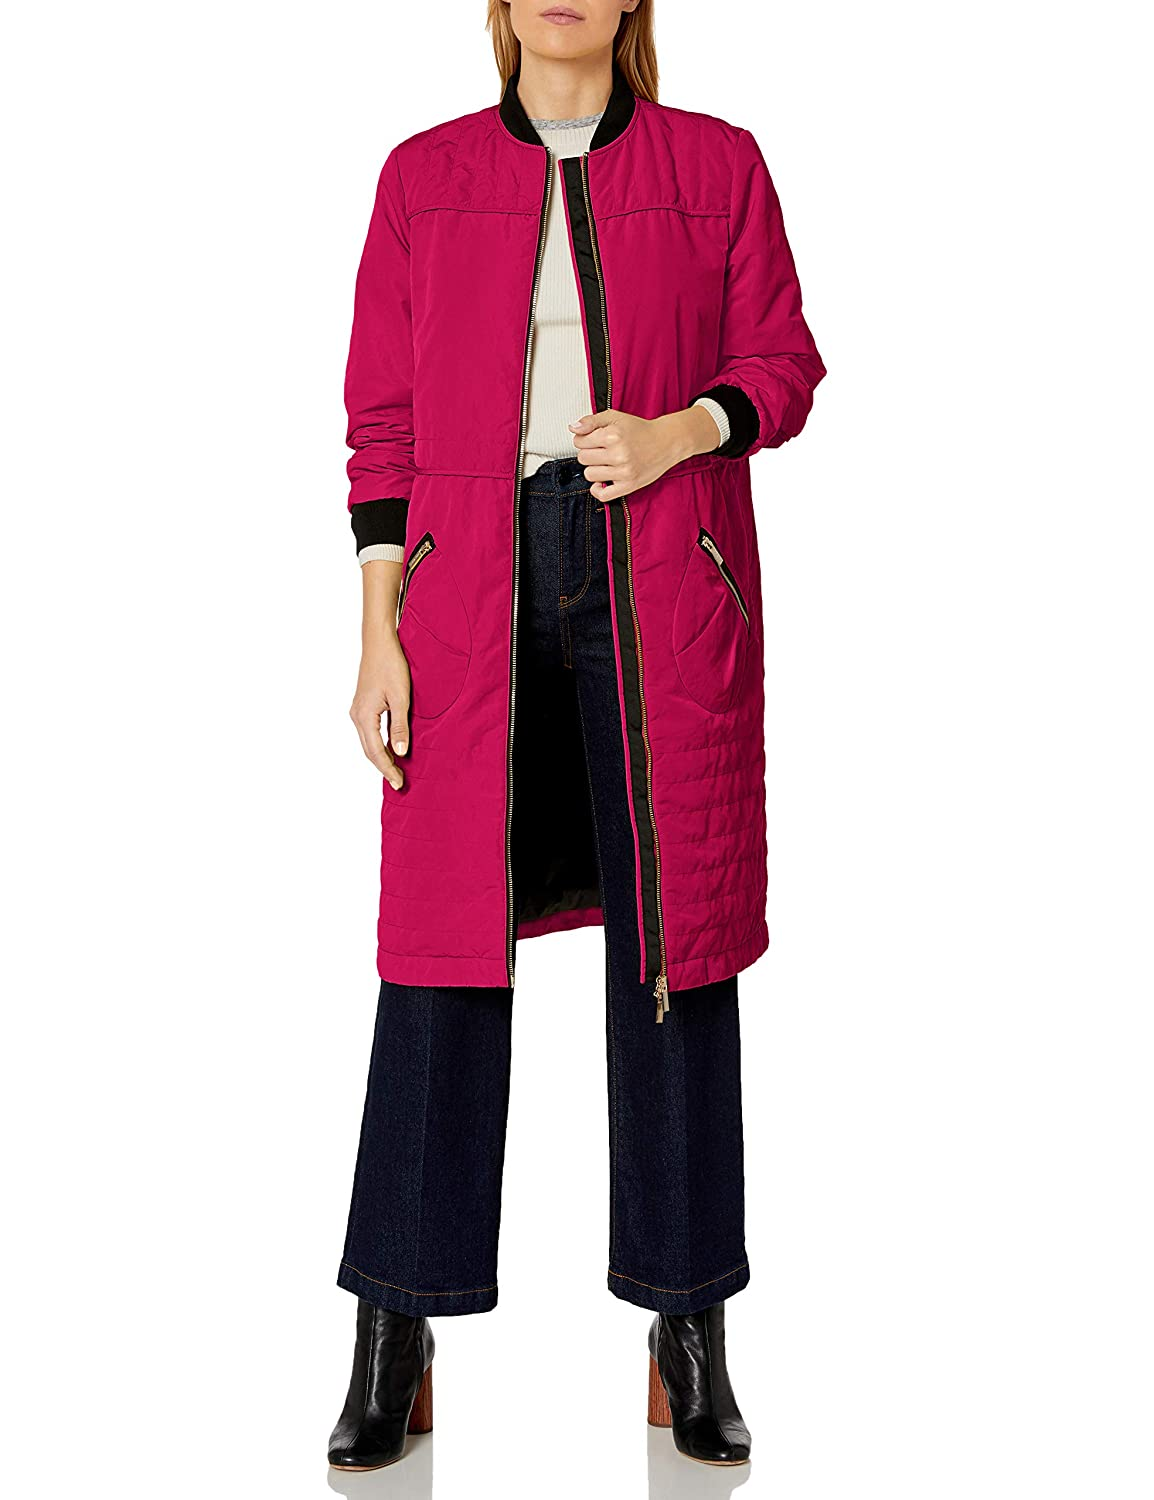 Image of Coats & Jackets A|X Armani Exchange Women's Knee Length Coat Front and Zipper Pockets